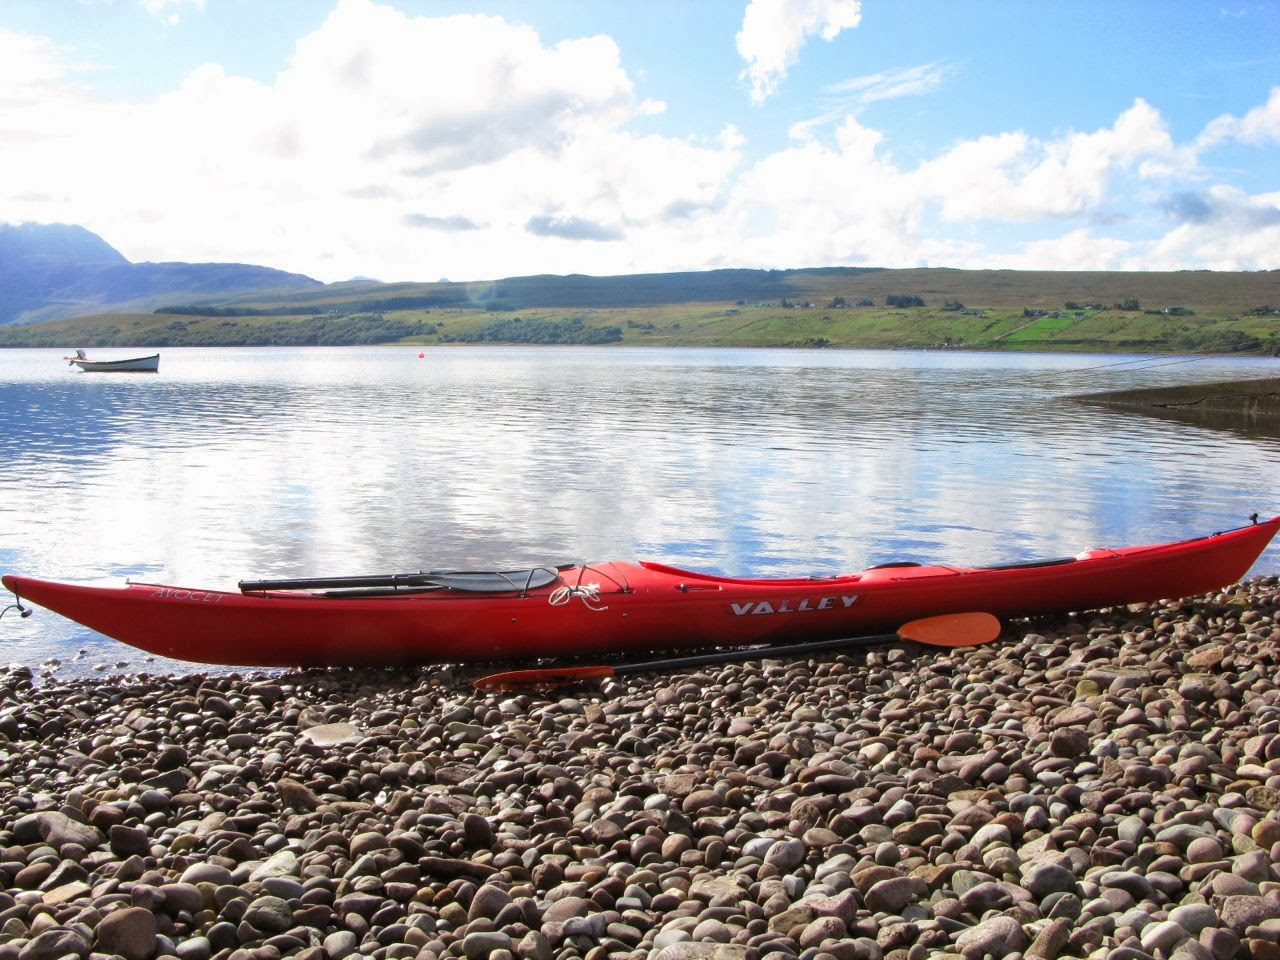 Ive Decided To Put My Sea Kayak Up For Sale Had Some Great Times In This Boat But Now That Im Not Around Other Kayaking Friends